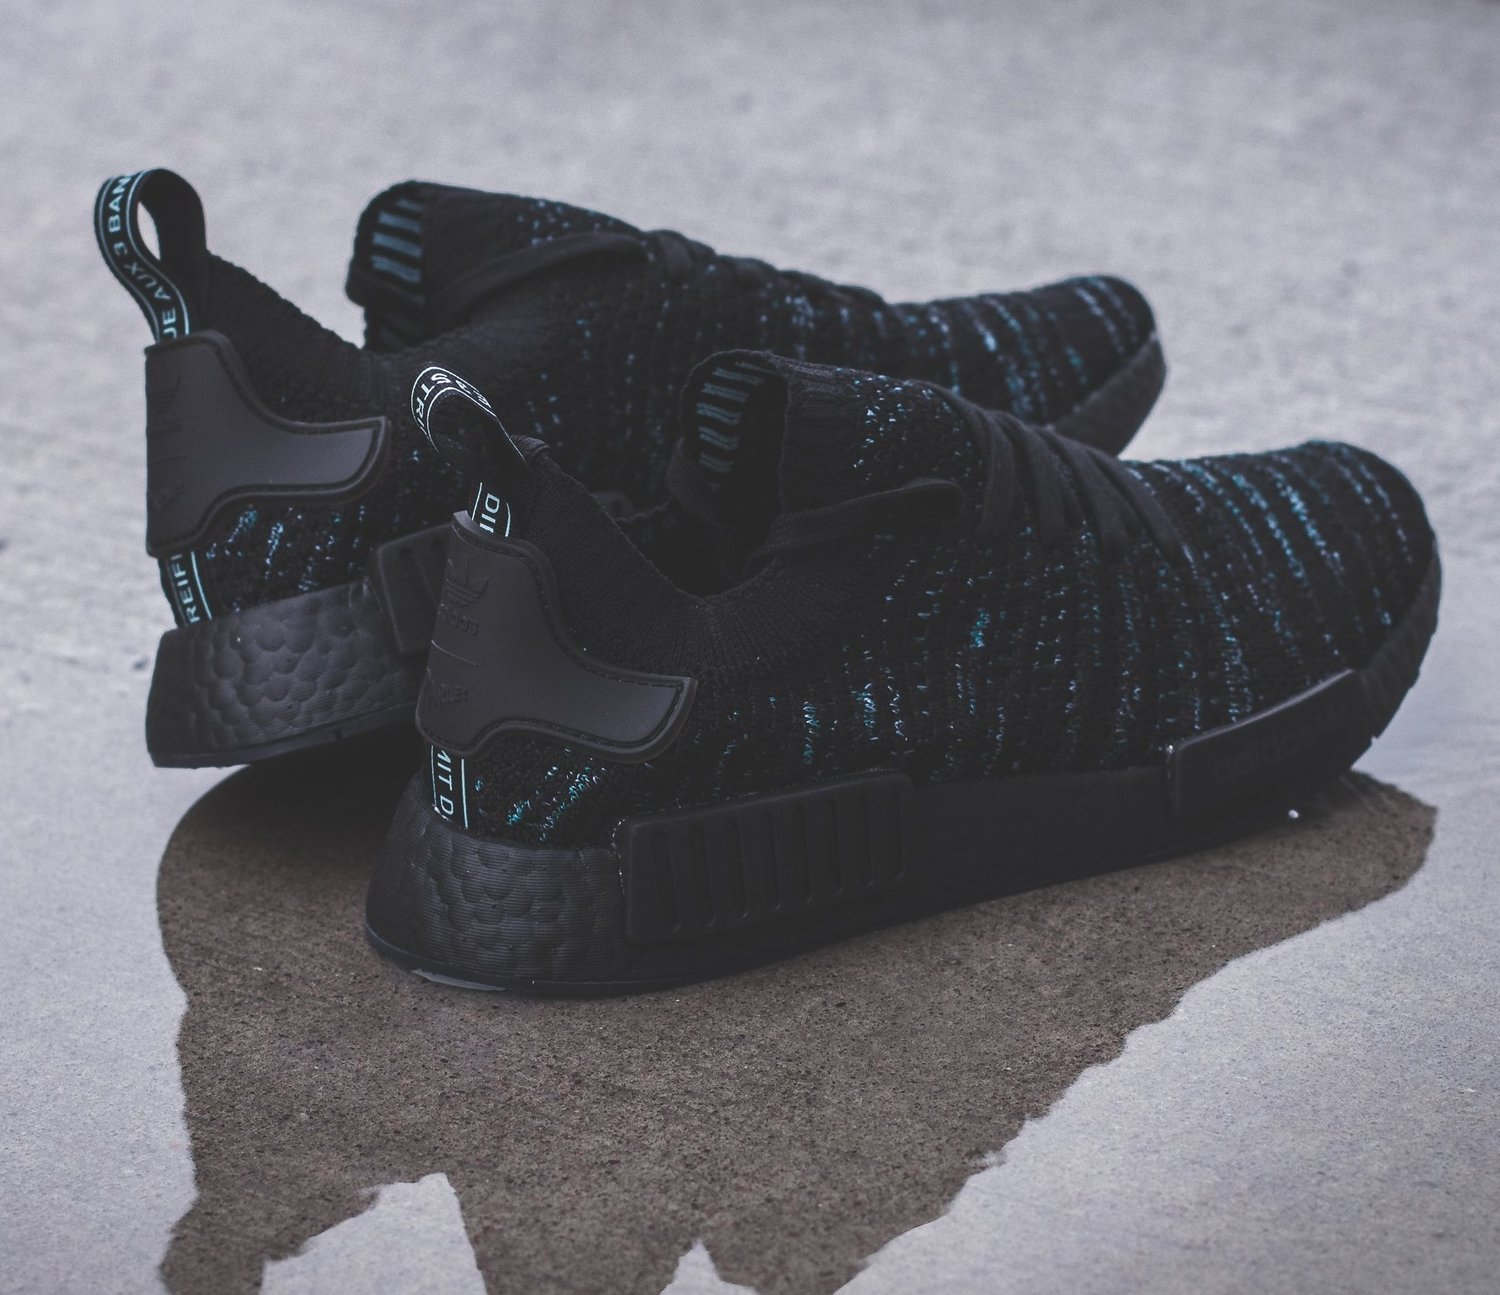 official photos 85096 db736 Now Available: Parley x adidas NMD R1 STLT PK